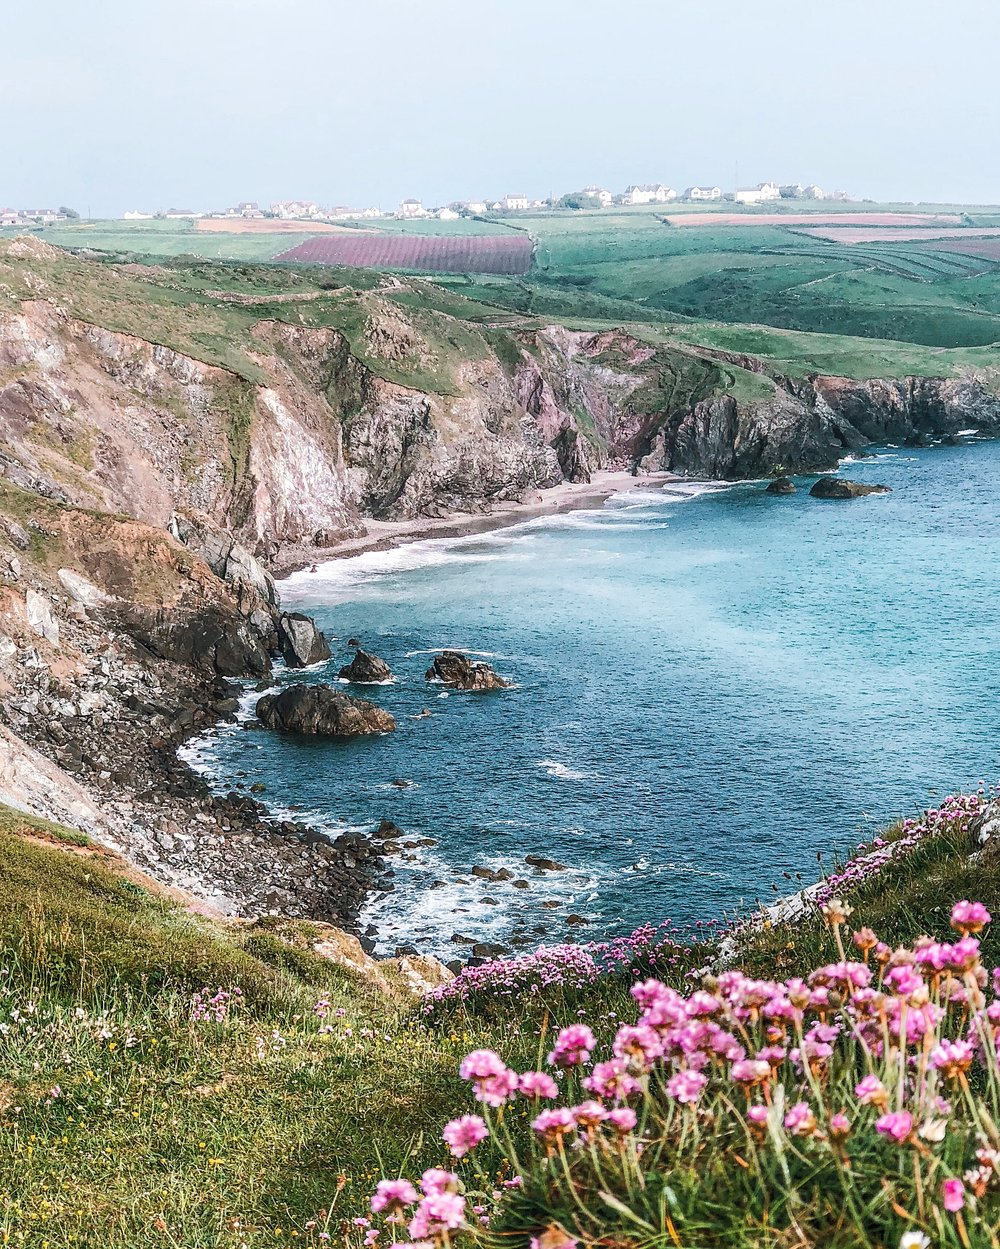 Ellie Dyduch - The Lizard Peninsula, Cornwall, UK